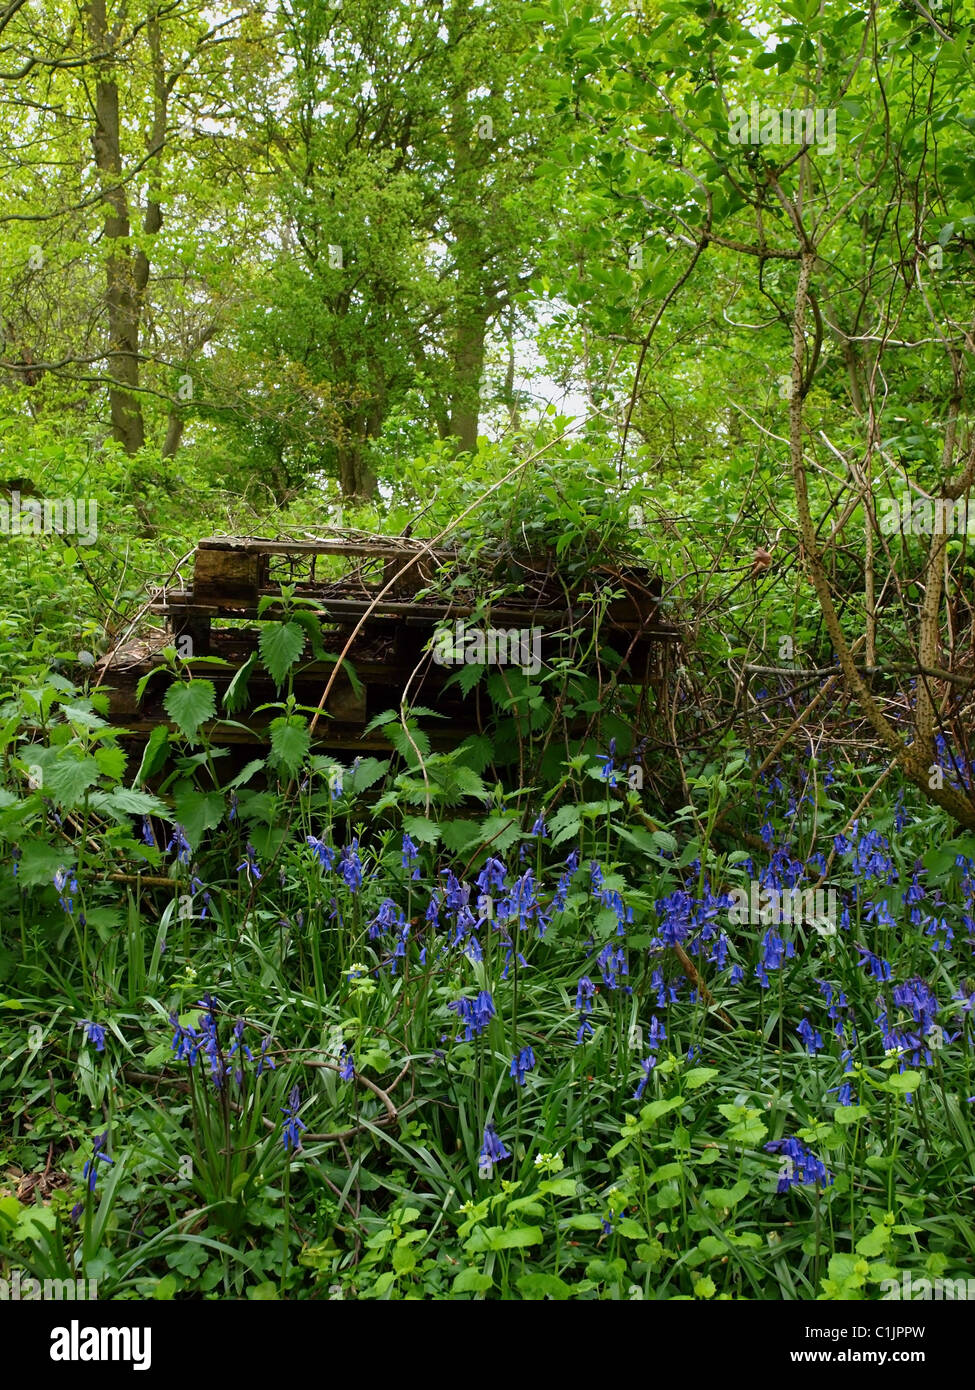 Bluebells growing in a copse with discarded pallets behind. Stock Photo